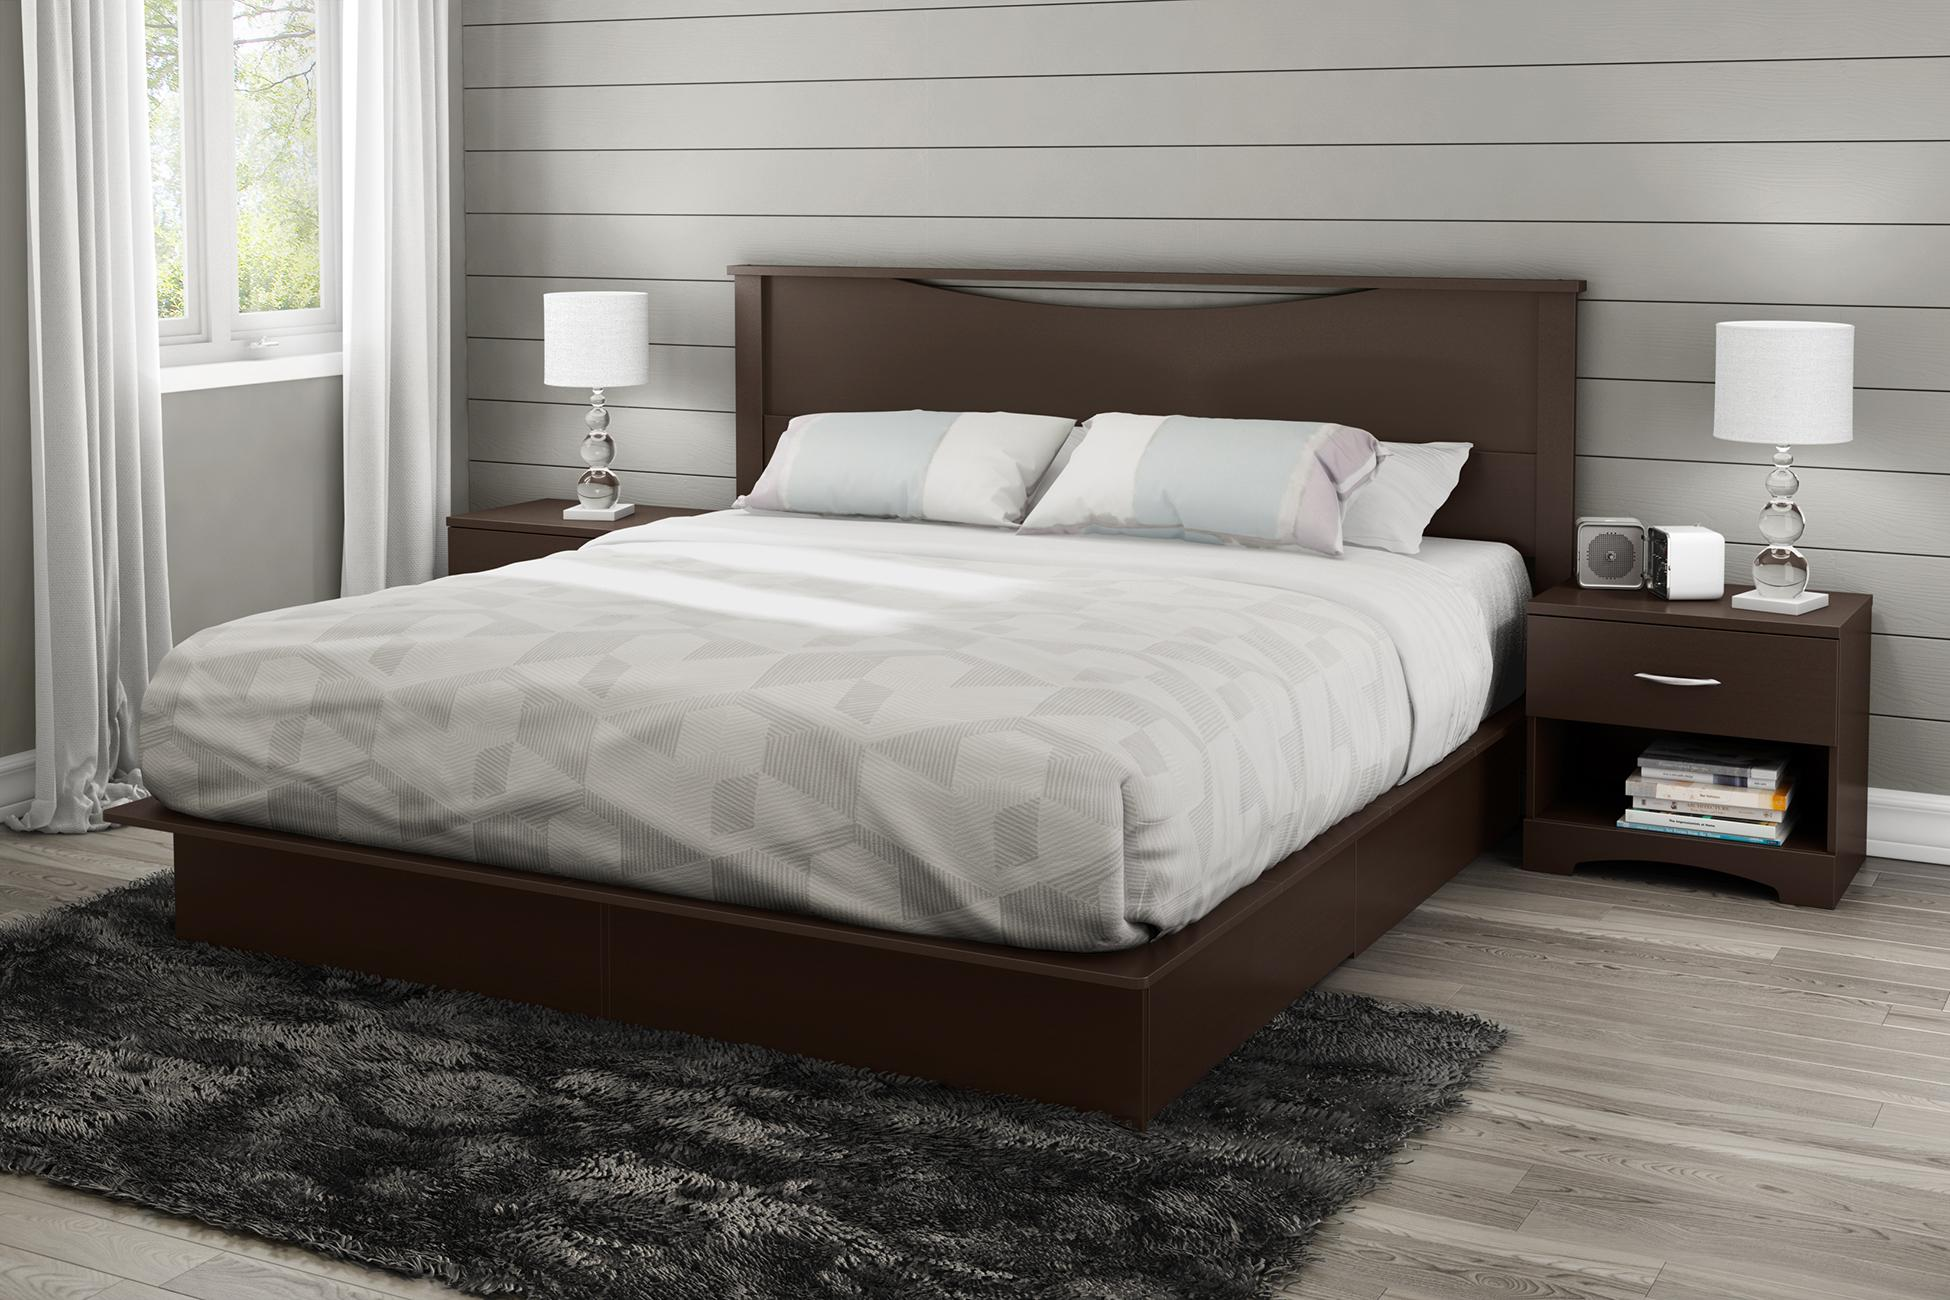 Sleep Number Beds Without The Headboard Pictures